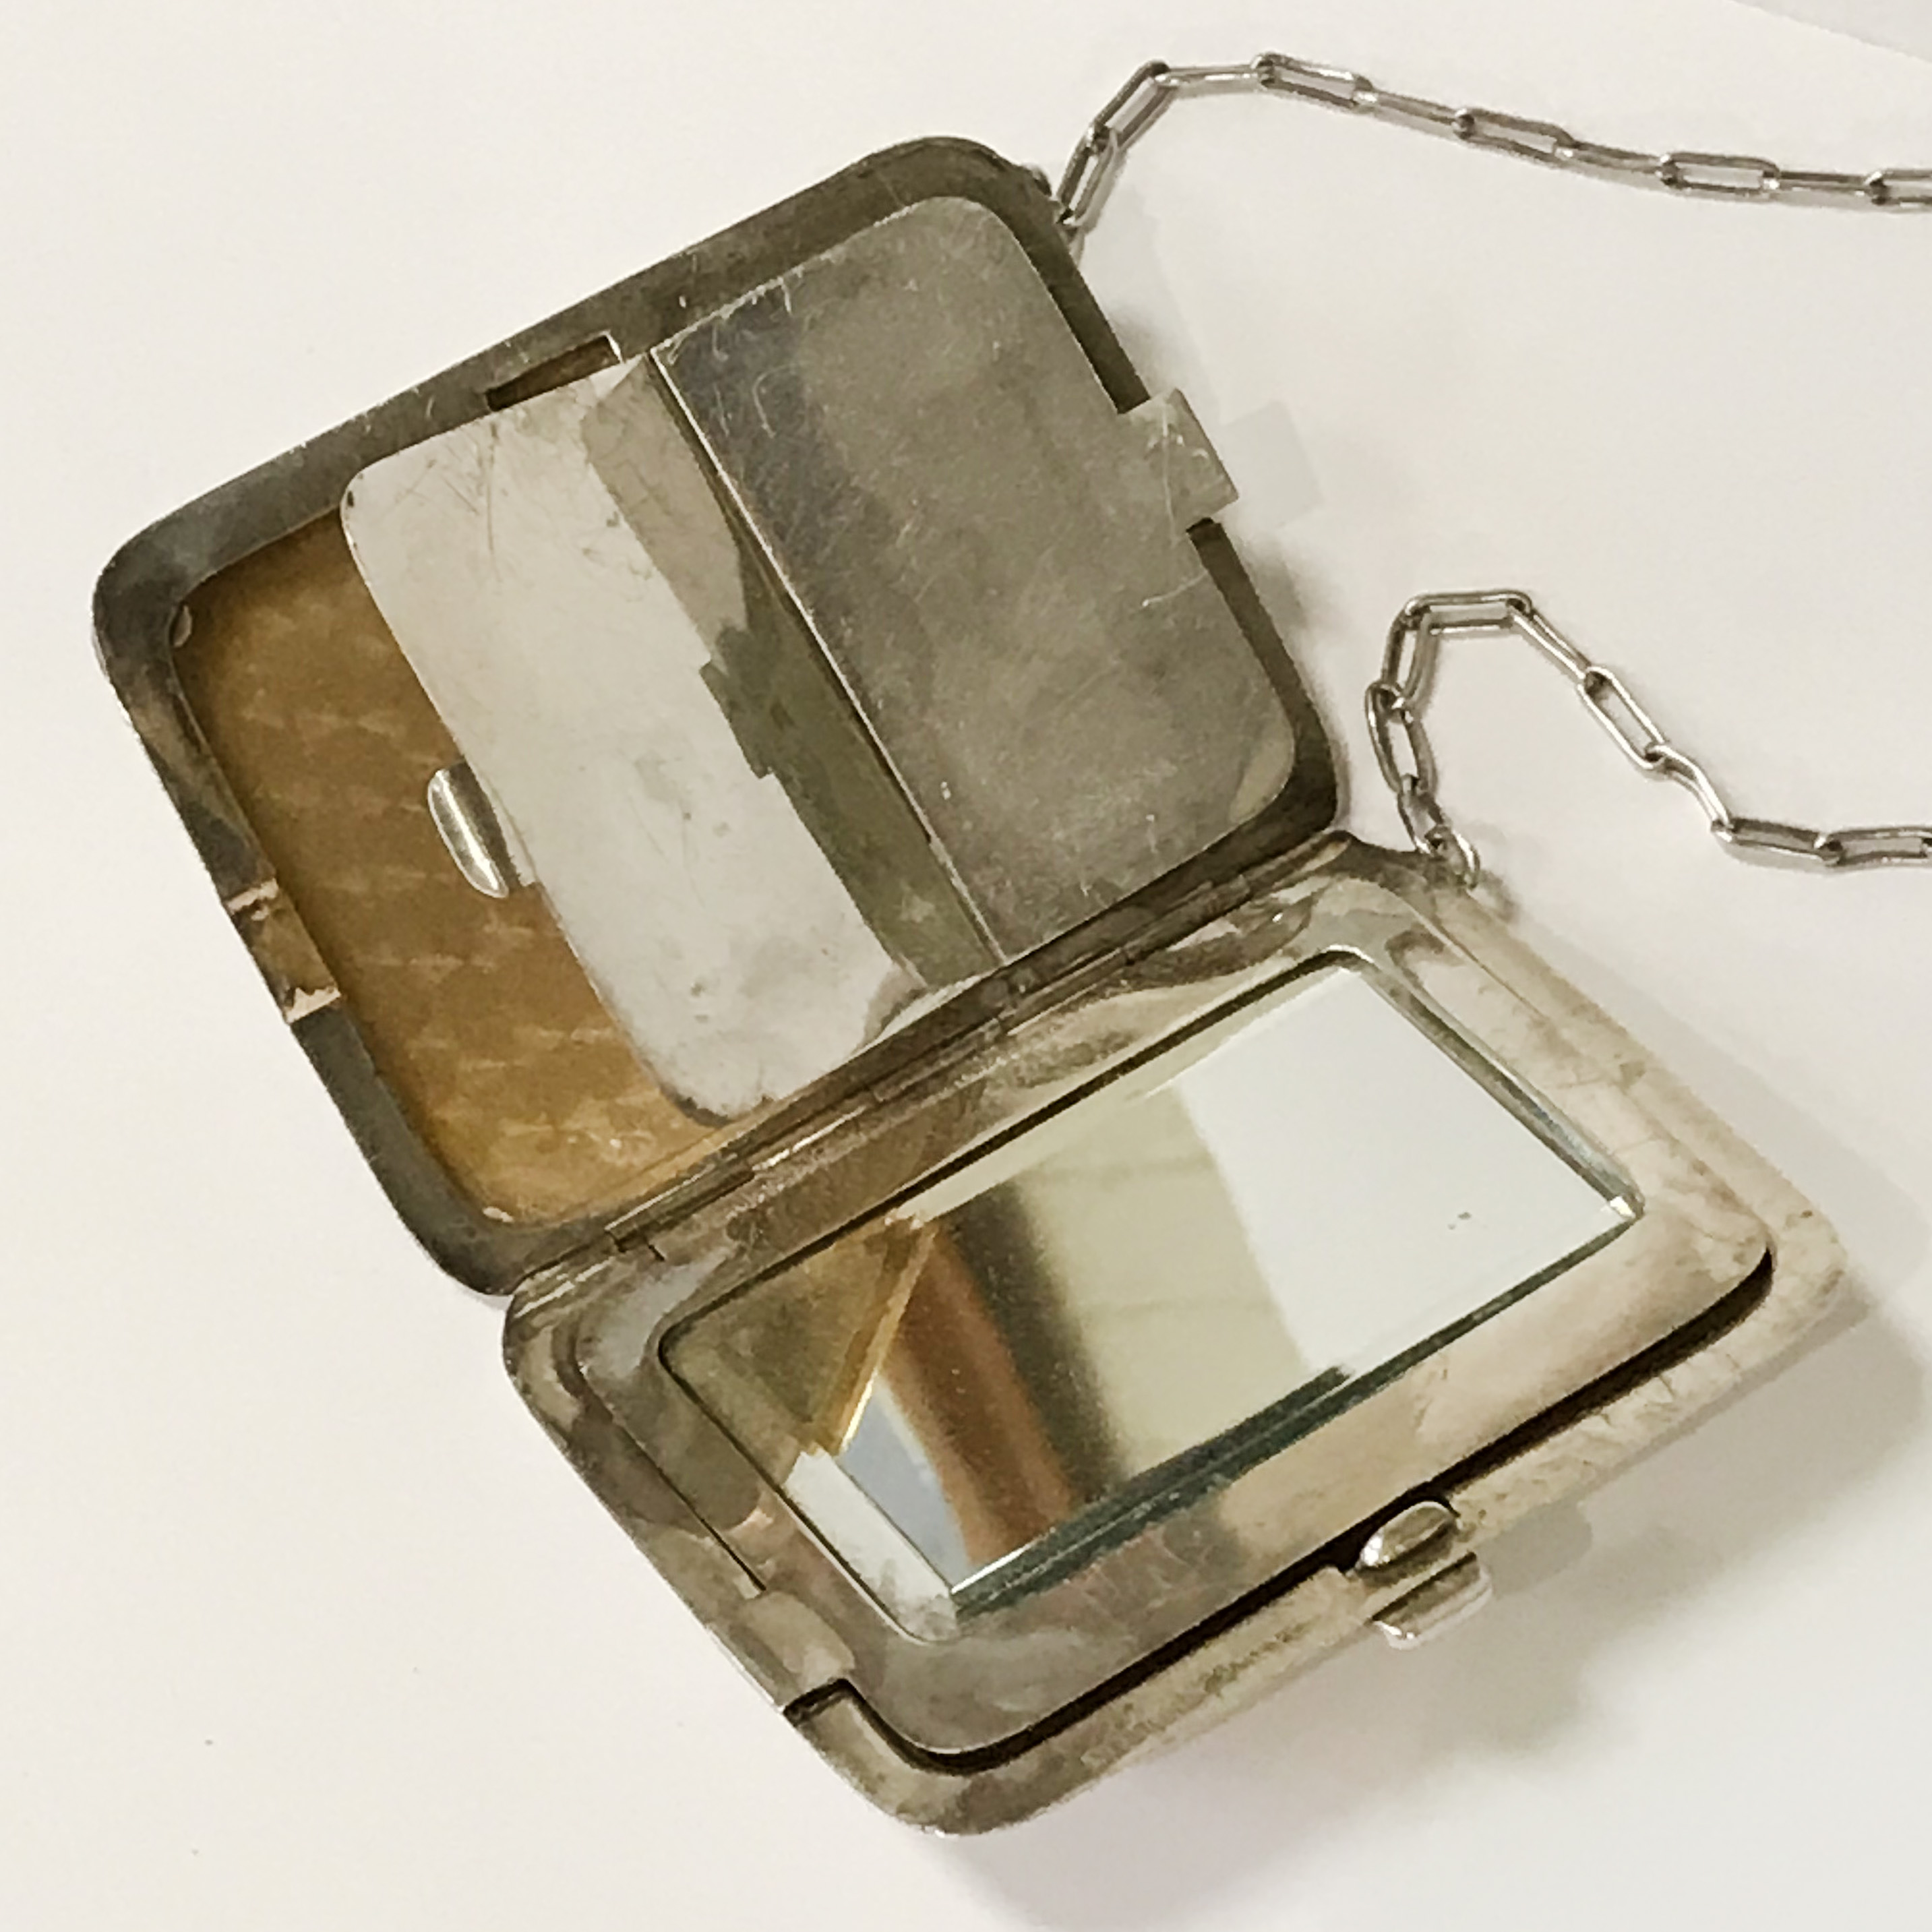 HM SILVER & GOLD INLAID COMPACT - 9CMS X 6.5CMS - Image 6 of 7